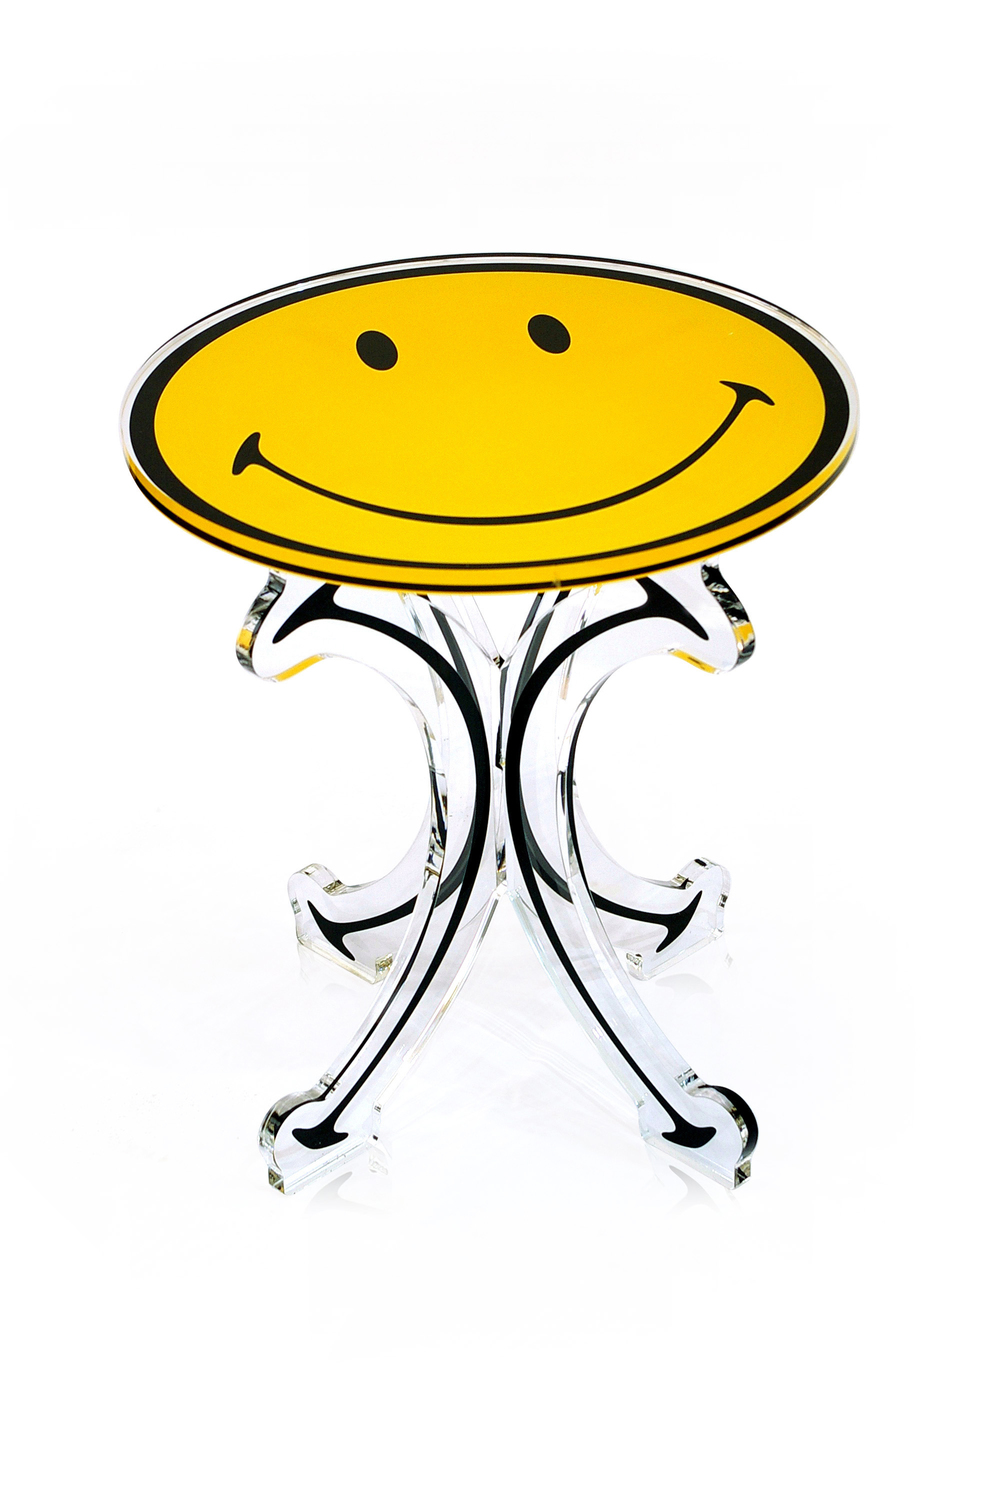 petite table smiley.jpg